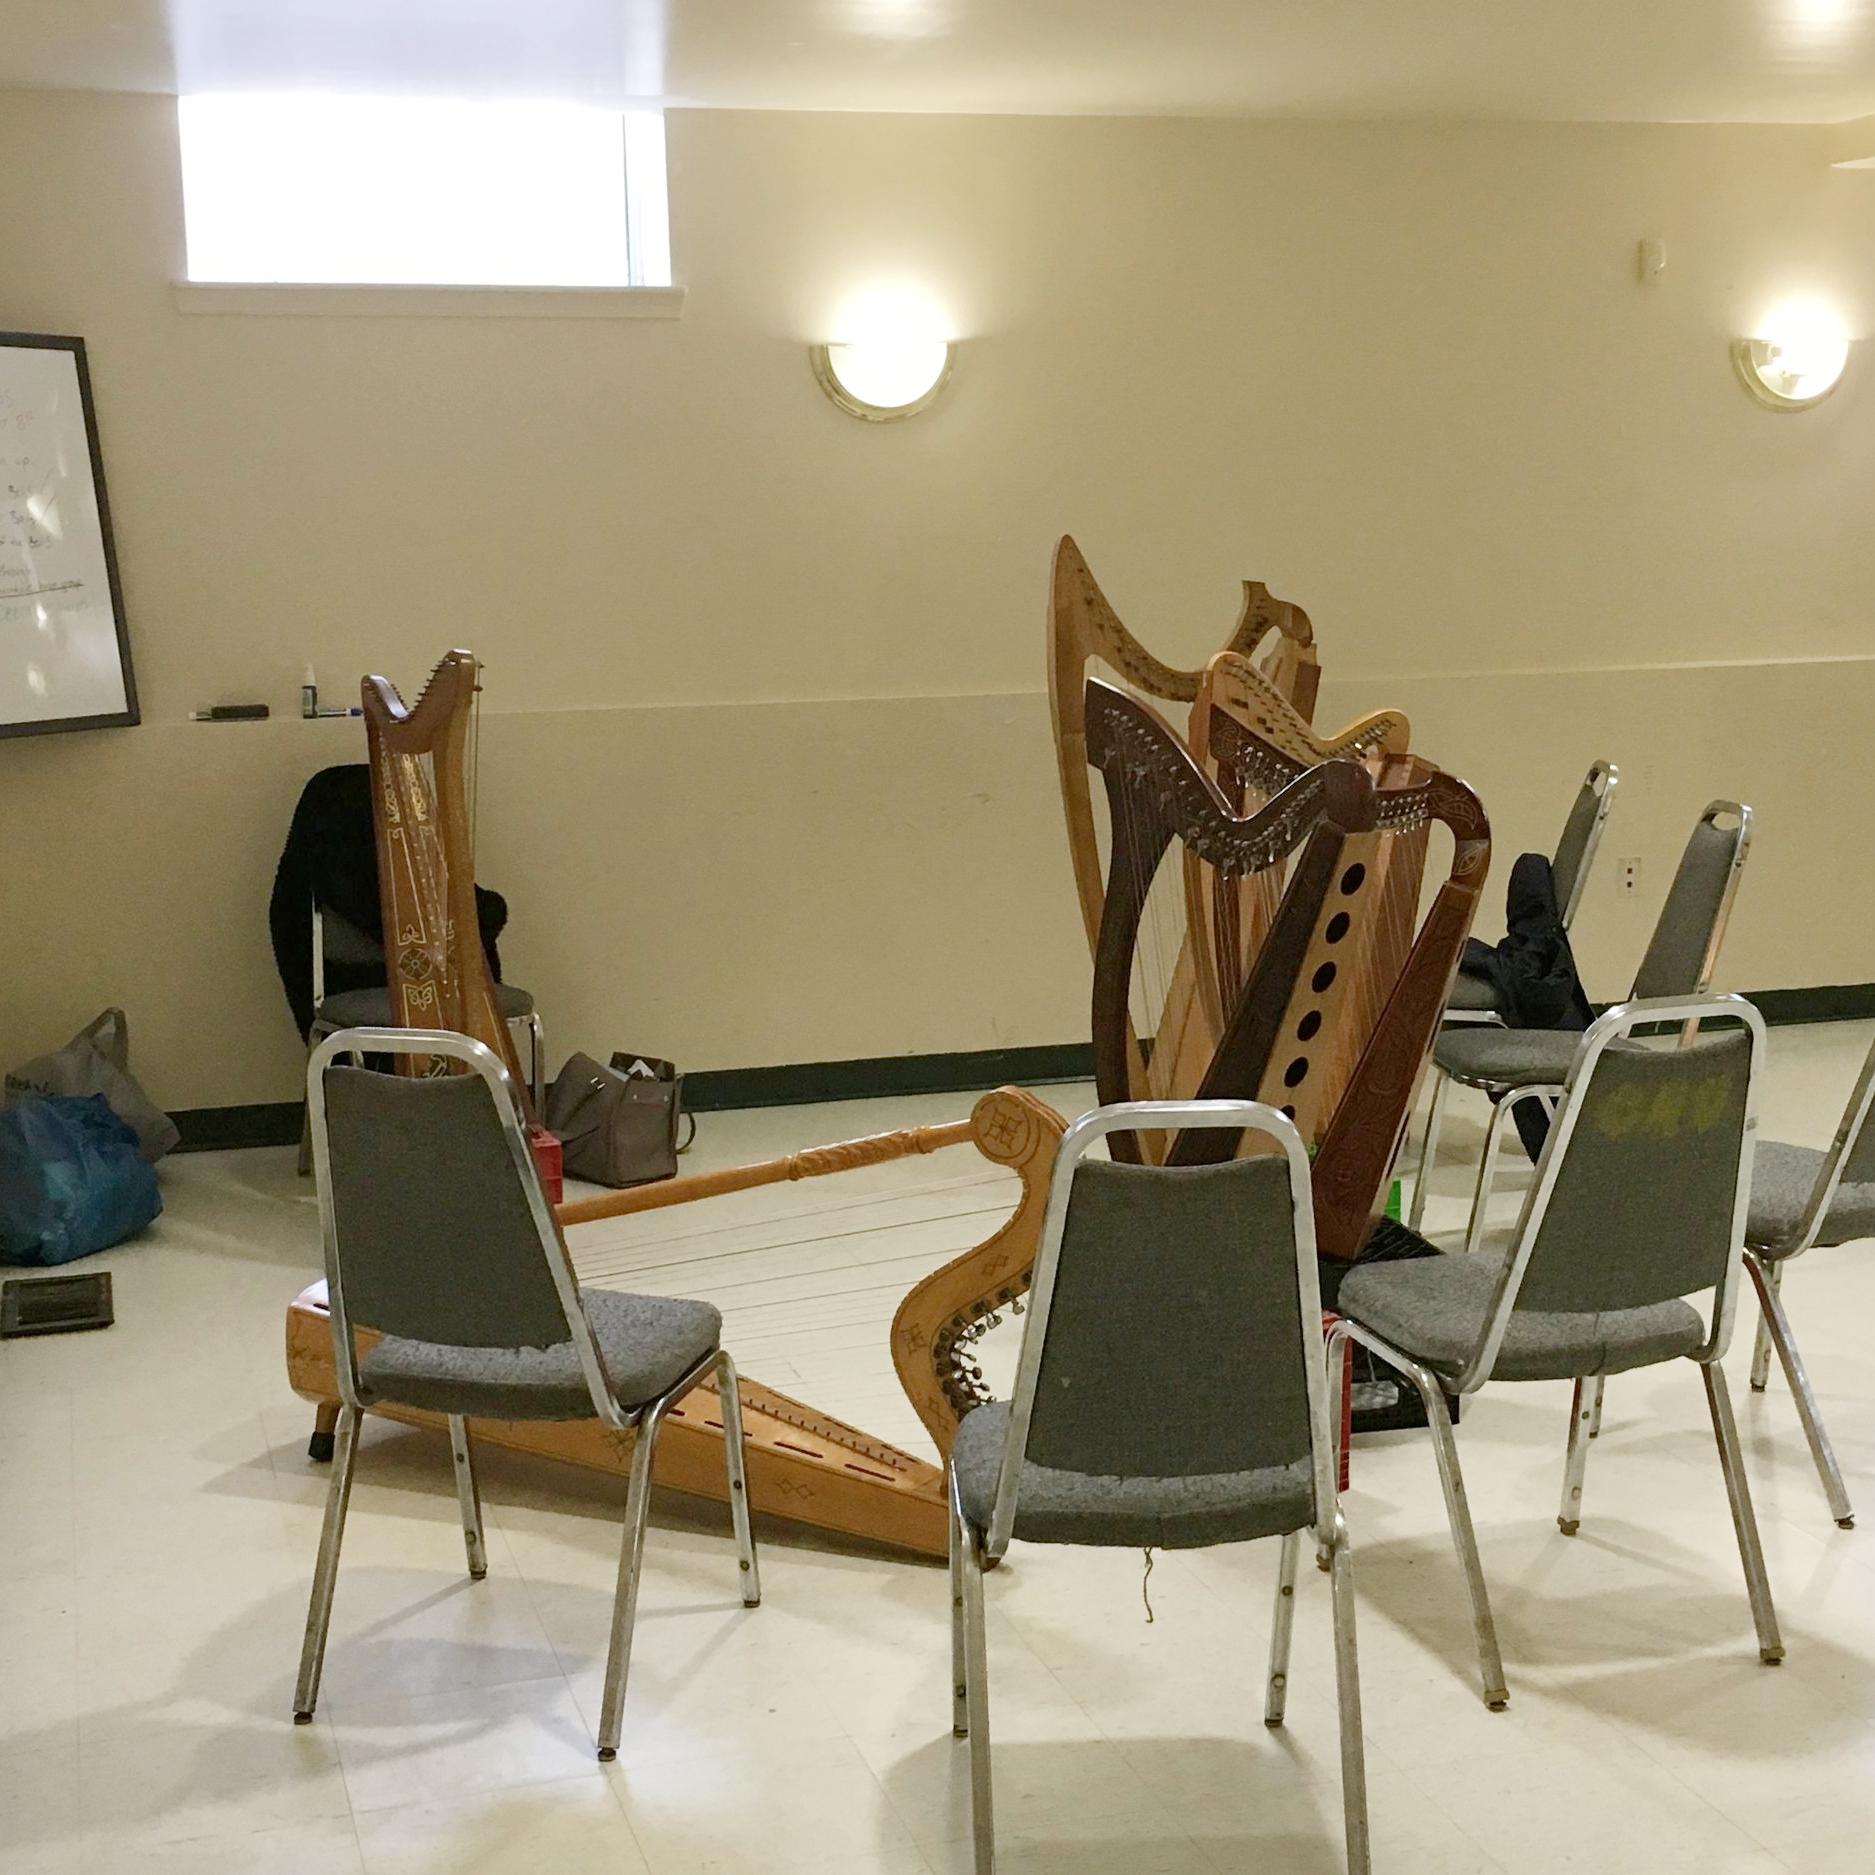 Jasmine teaches group harp lessons bi-weekly at the Druid Heights Community Center